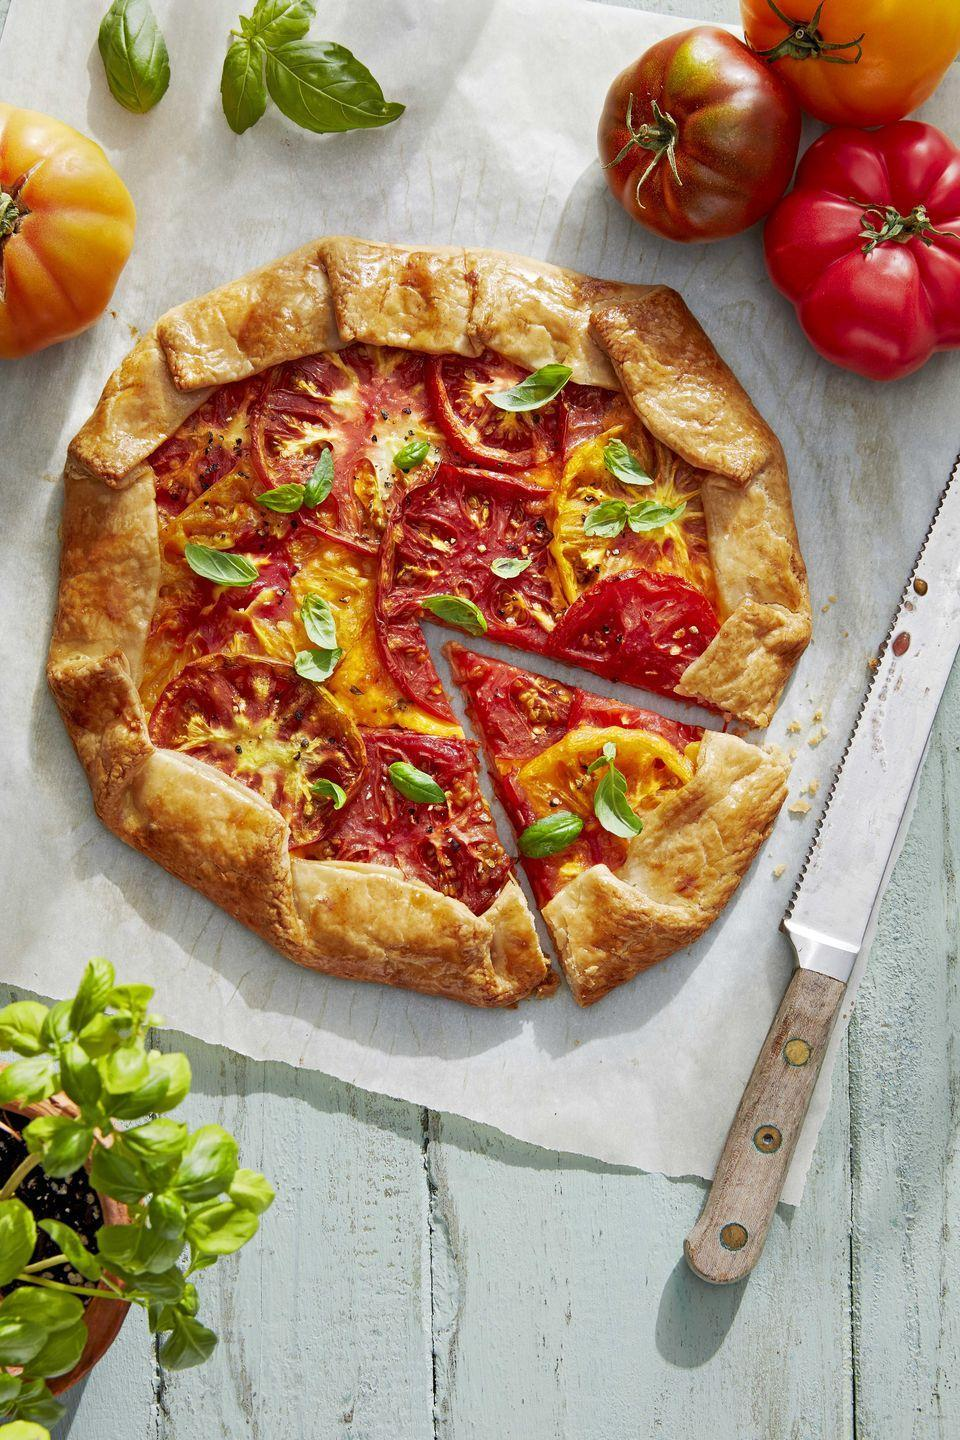 """<p>Celebrate summer's favorite fruit (yes, tomatoes are a fruit) in a cheesy galette all rolled up in a store-bought crust.<a href=""""https://www.countryliving.com/food-drinks/a28608360/rustic-tomato-galette-recipe/"""" rel=""""nofollow noopener"""" target=""""_blank"""" data-ylk=""""slk:"""" class=""""link rapid-noclick-resp""""><br></a></p><p><strong><a href=""""https://www.countryliving.com/food-drinks/a28608360/rustic-tomato-galette-recipe/"""" rel=""""nofollow noopener"""" target=""""_blank"""" data-ylk=""""slk:Get the recipe"""" class=""""link rapid-noclick-resp"""">Get the recipe</a>.</strong> <br></p>"""